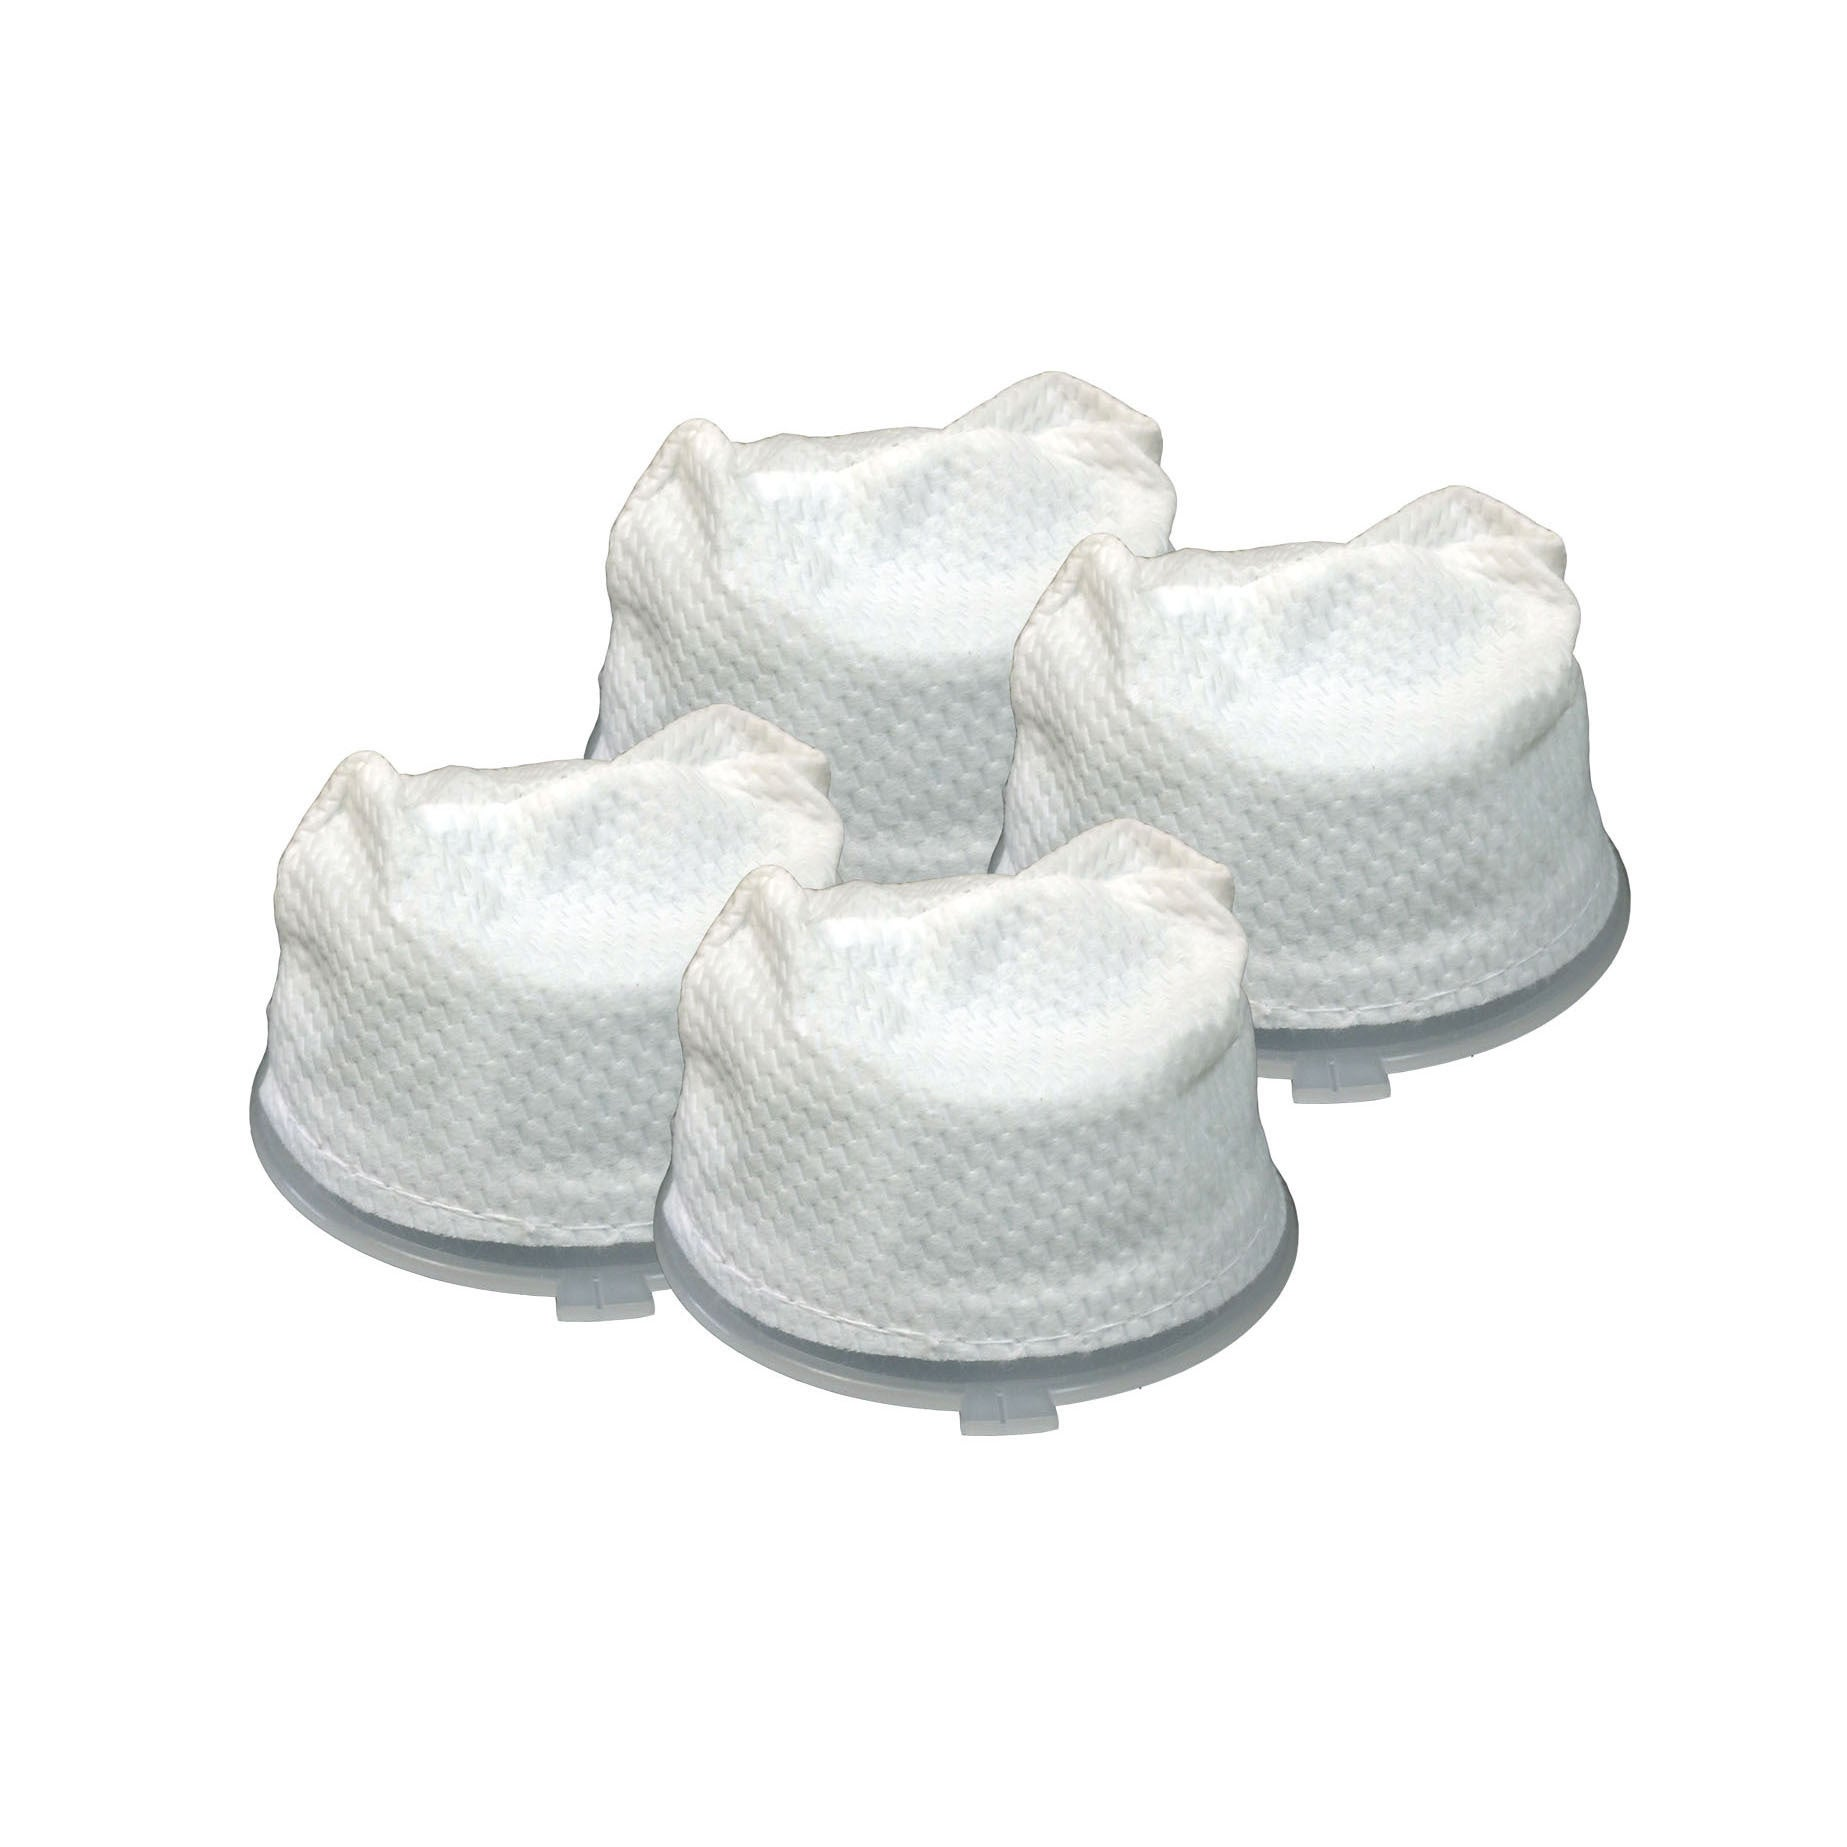 Crucial 4 Dirt Devil F5 Hand Vac Filters with Base Part #...